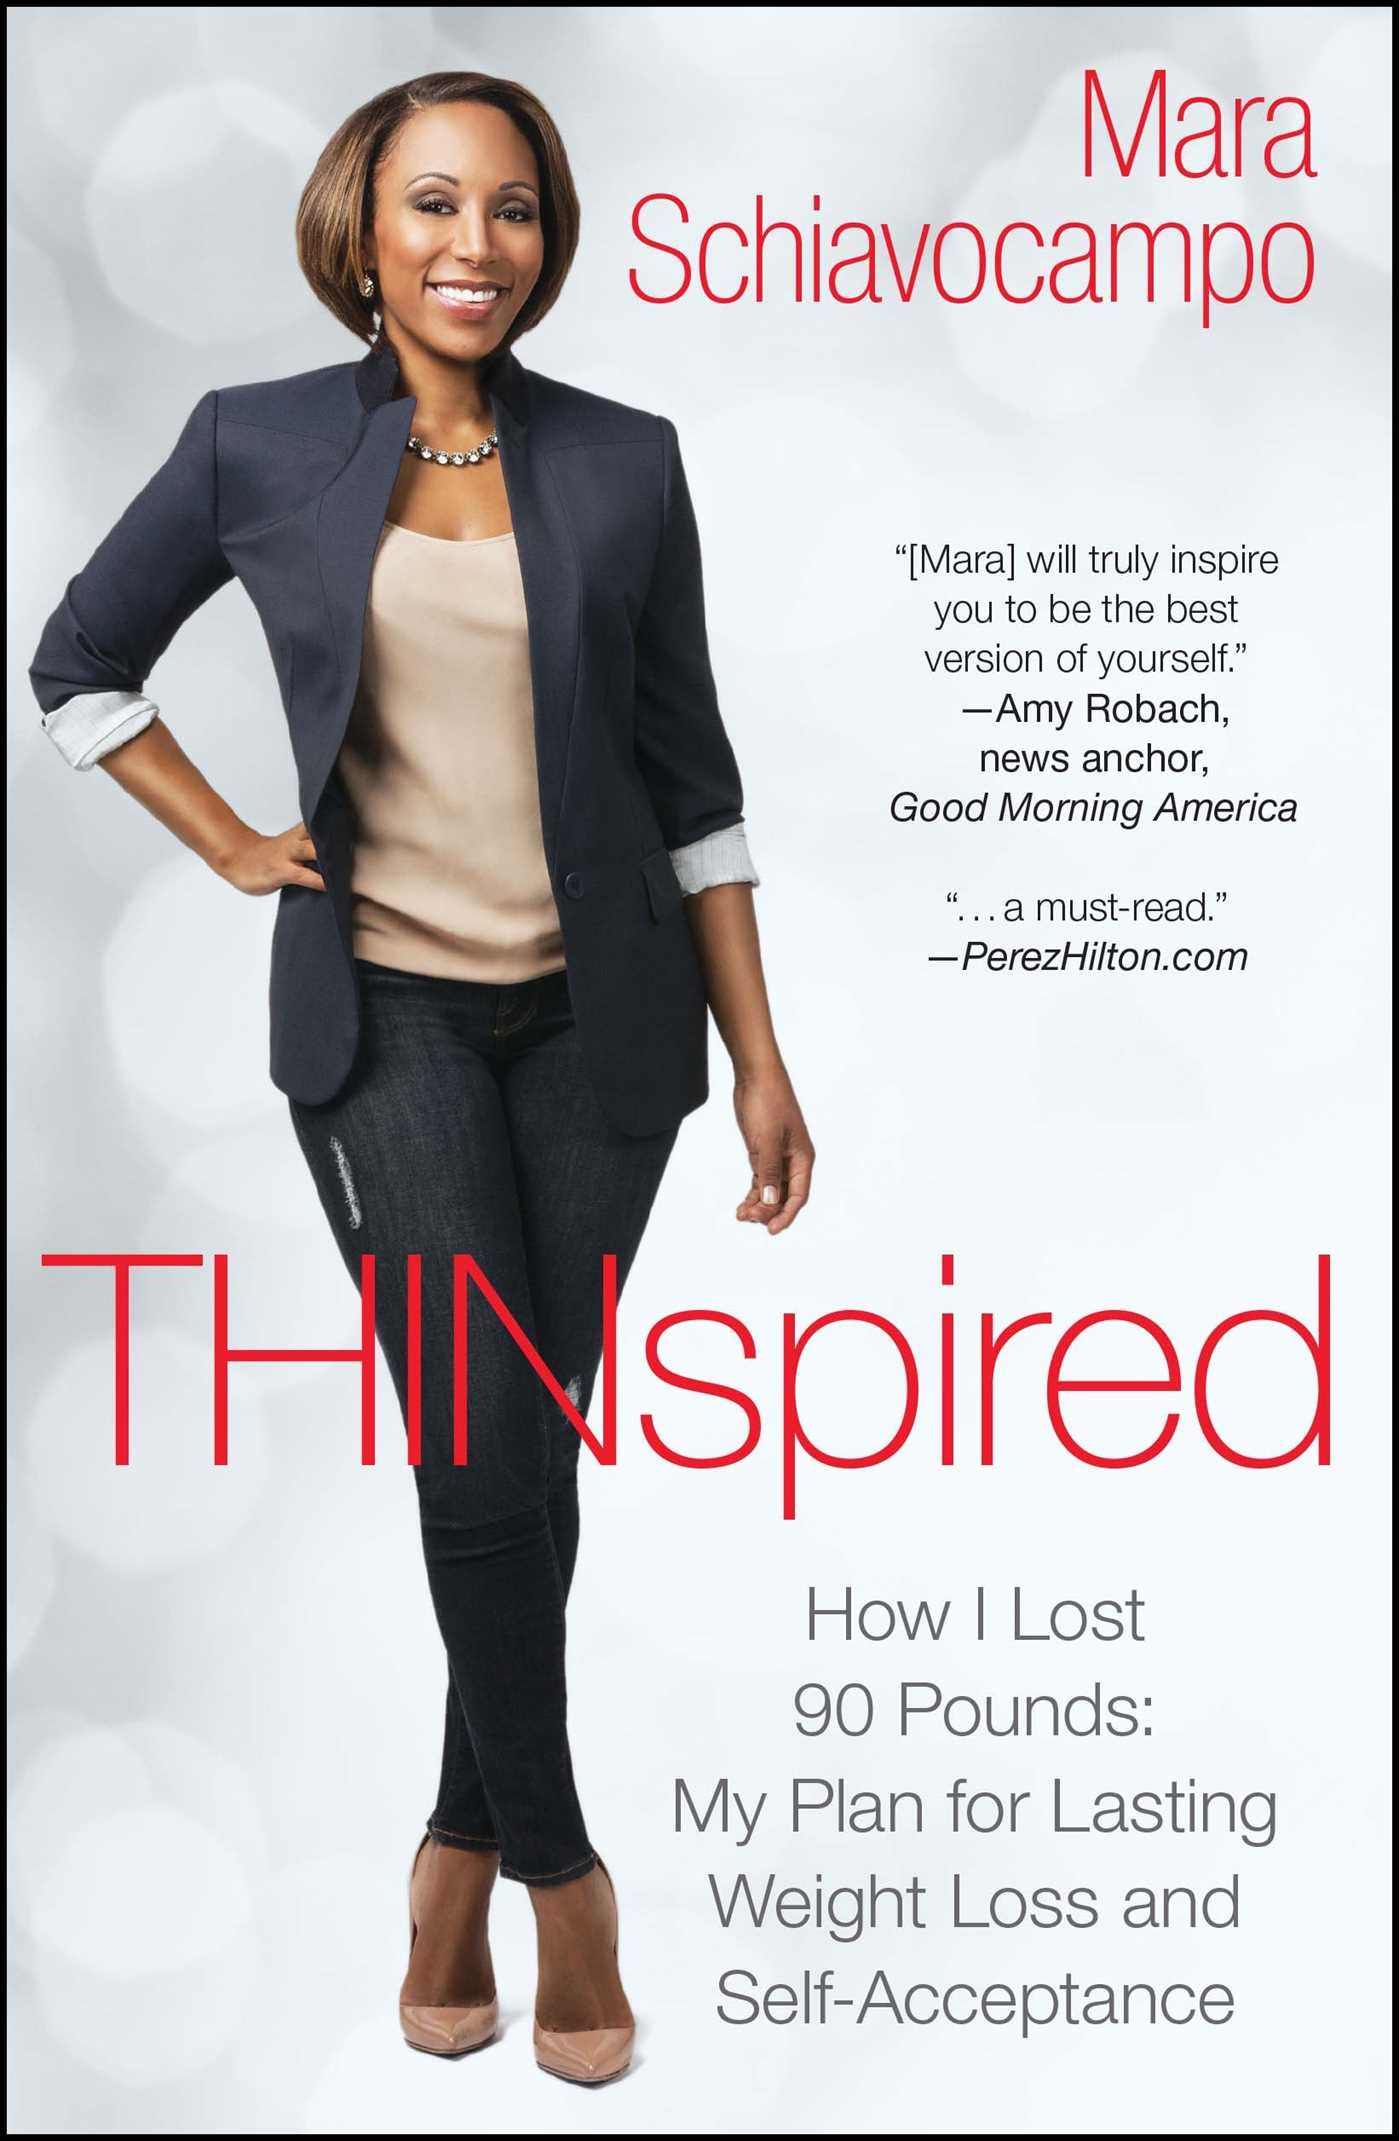 Her new book Thinspired